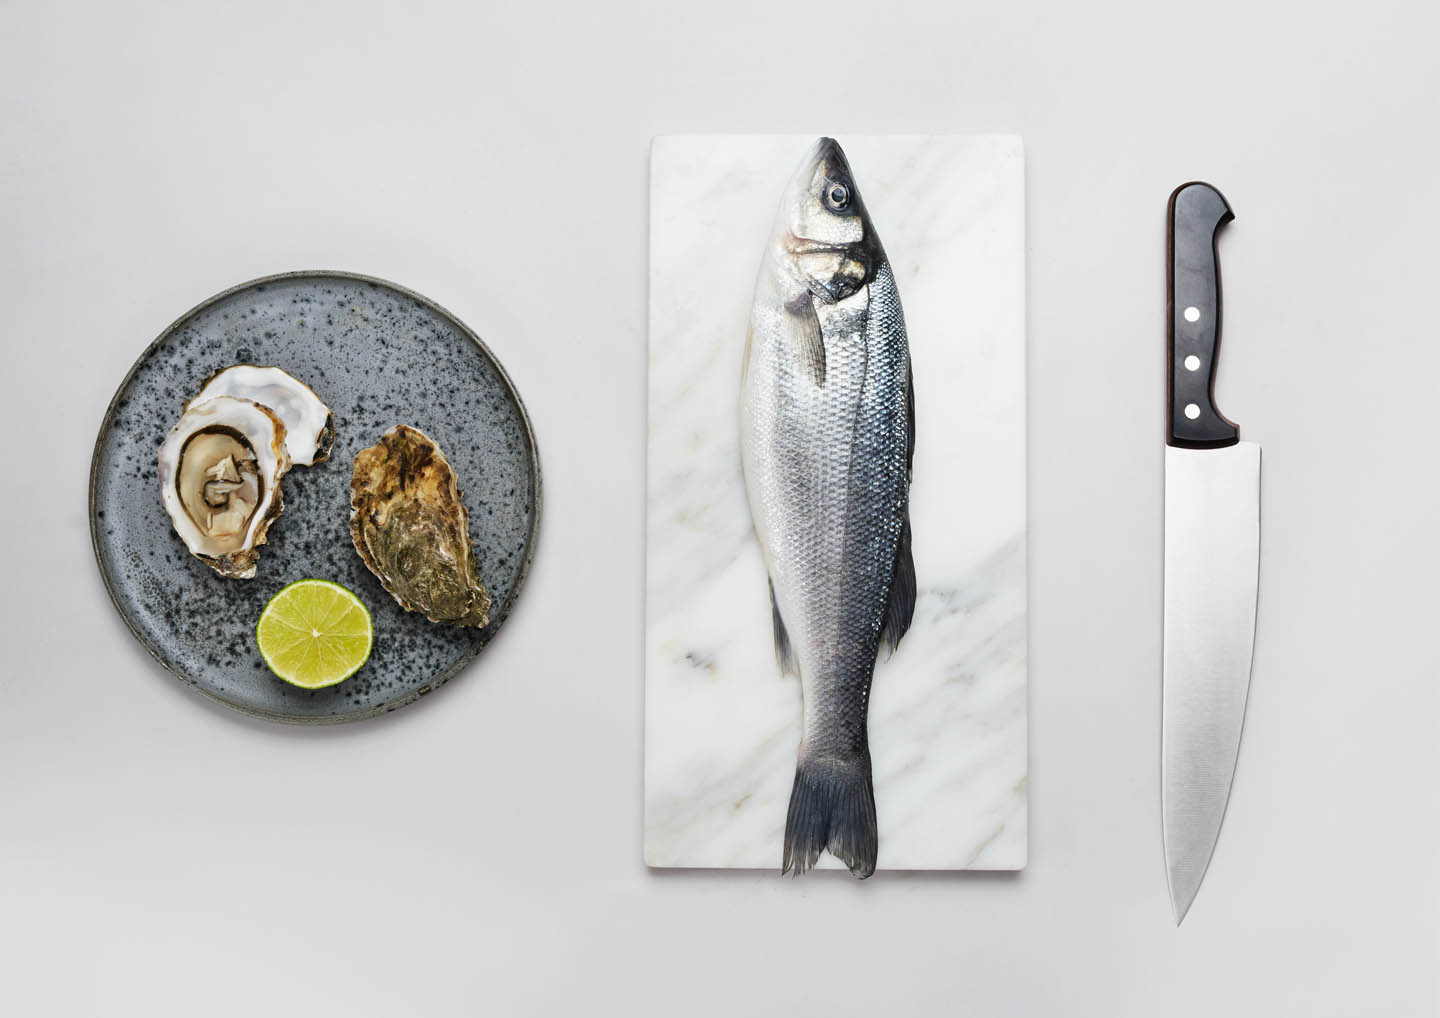 Øyo products and fish